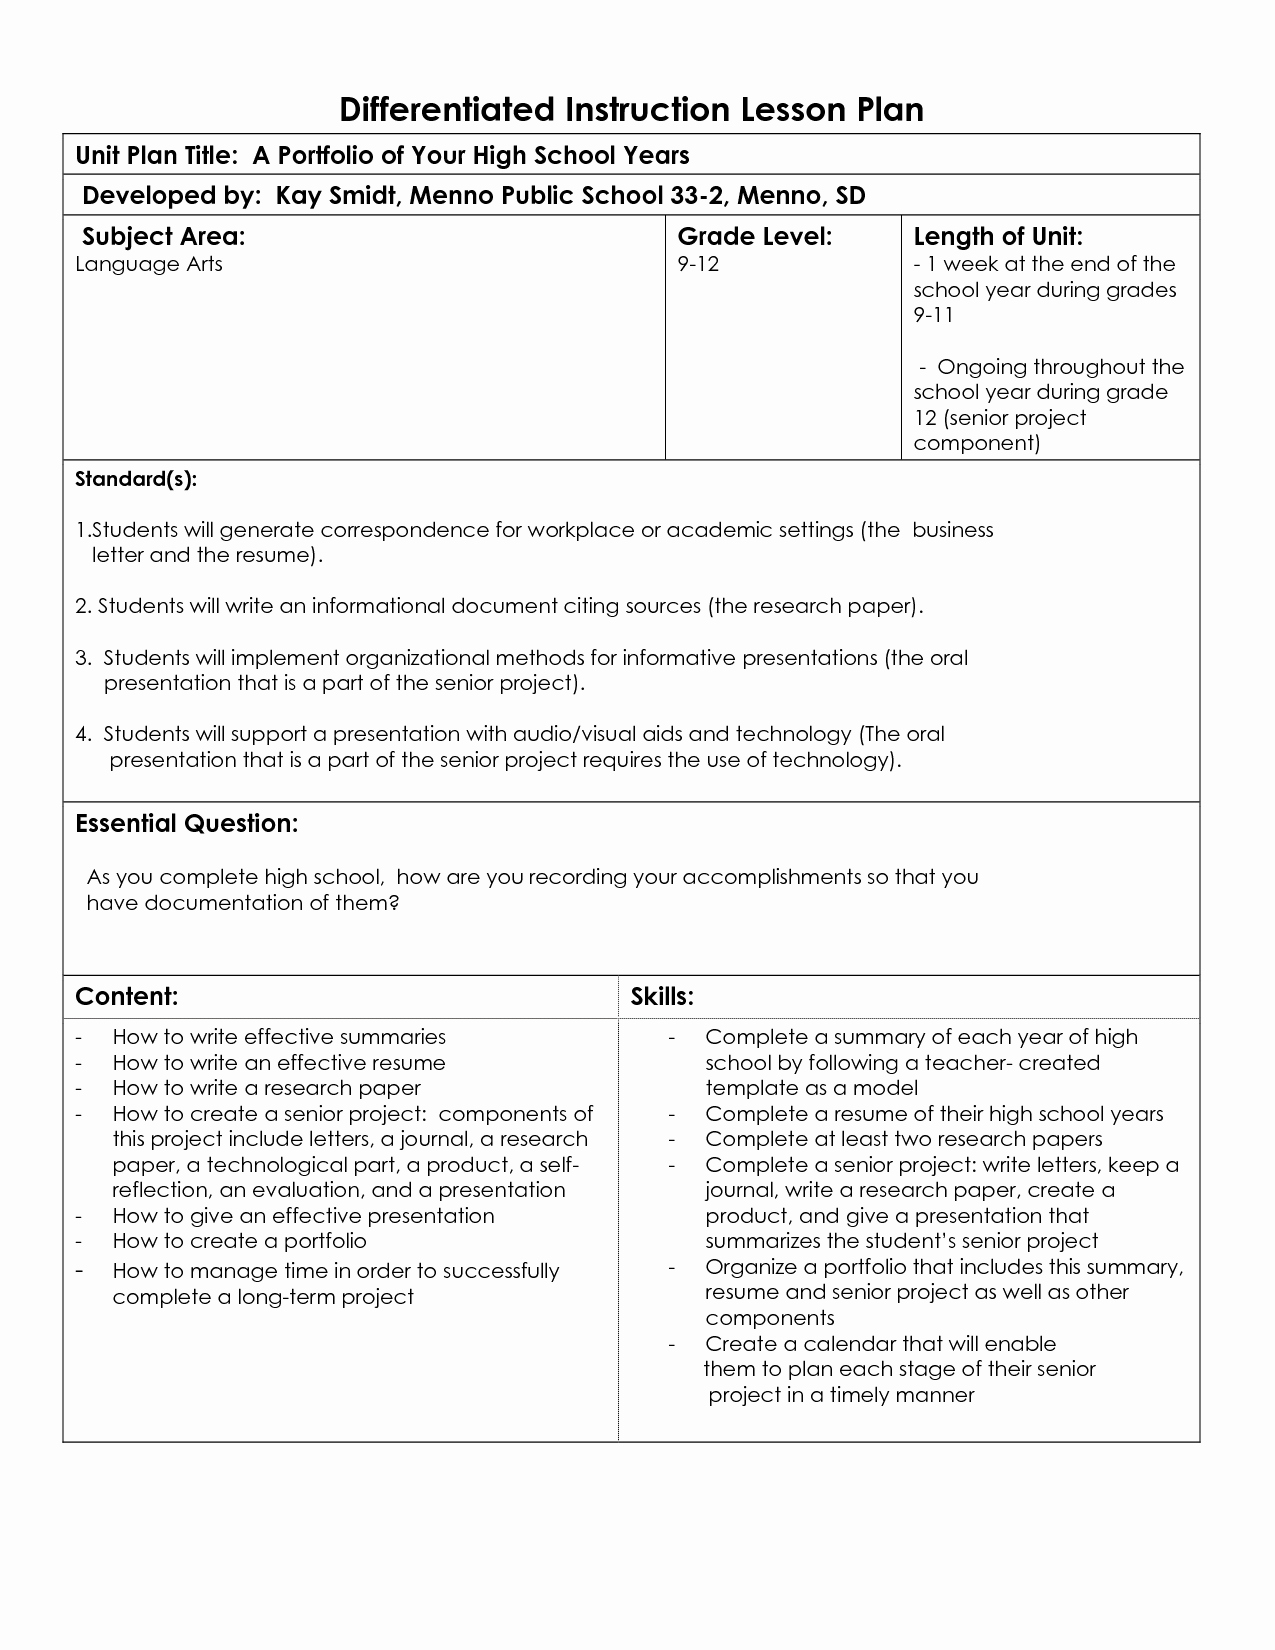 Differentiated Instruction Lesson Plan Template Unique Instruction Professional Development